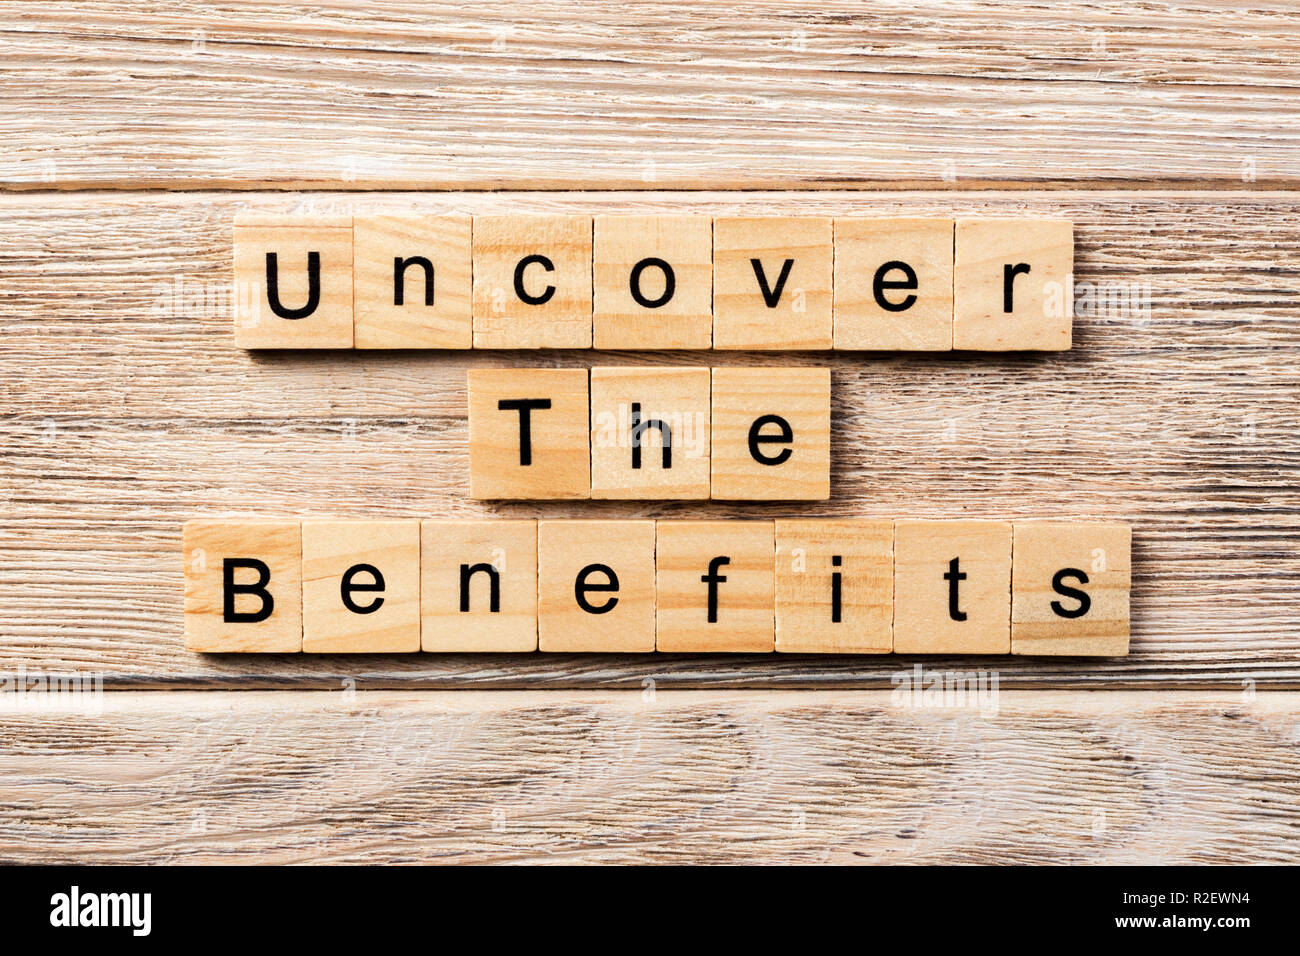 uncover the benefits word written on wood block. uncover the benefits text on table, concept. - Stock Image